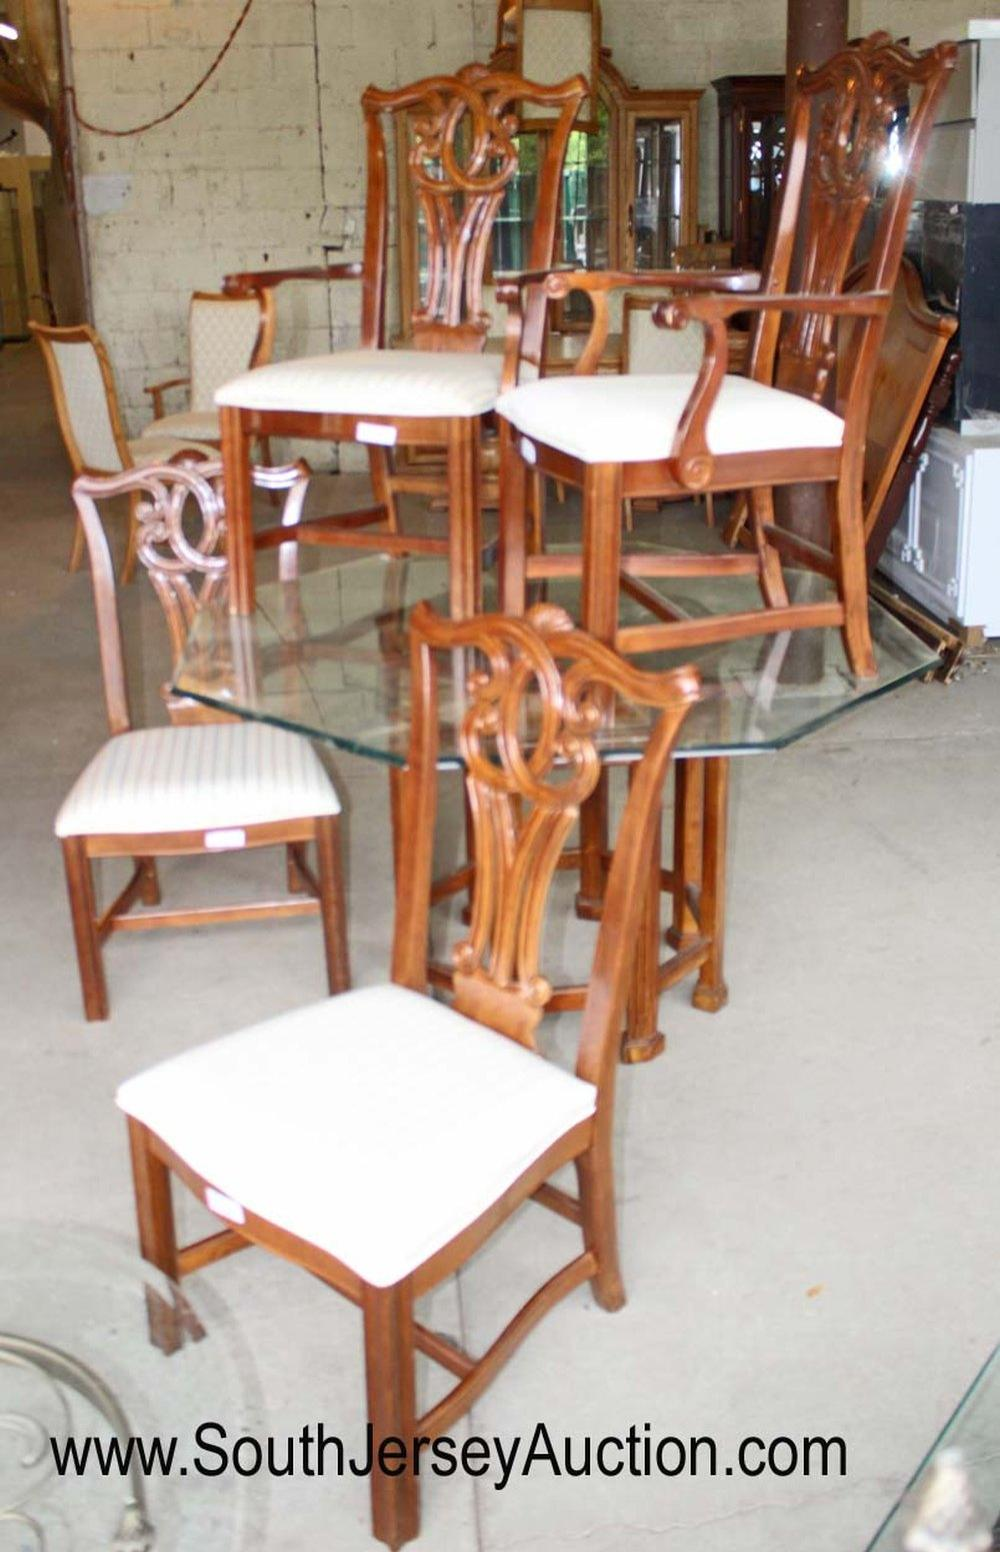 5 Piece Mahogany Glass Top Octagon Breakfast Table with 4 Chippendale Style Chairs